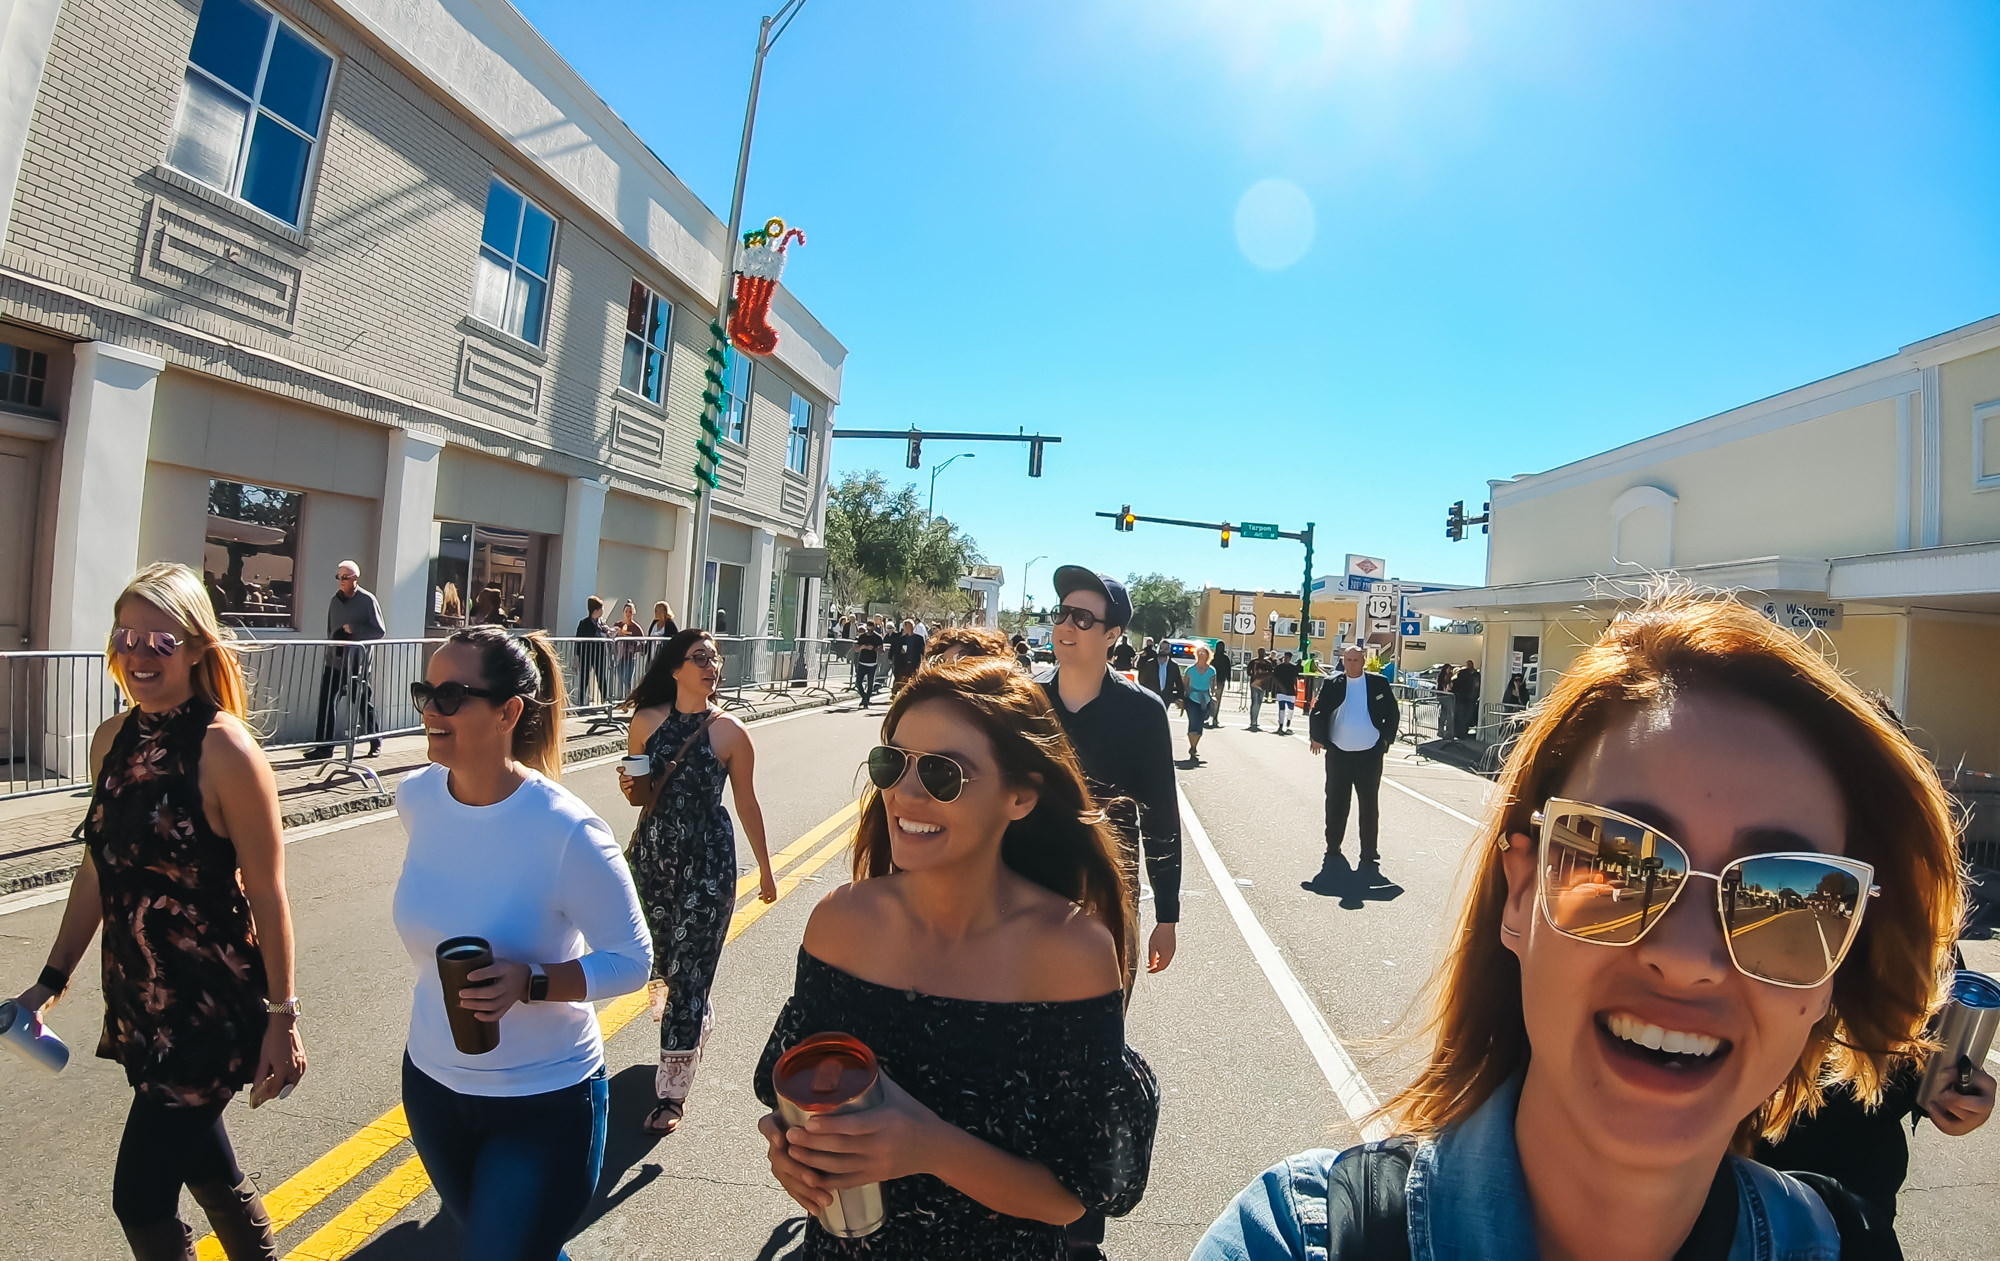 Walking towards the cathedral in downtown Tarpon Springs